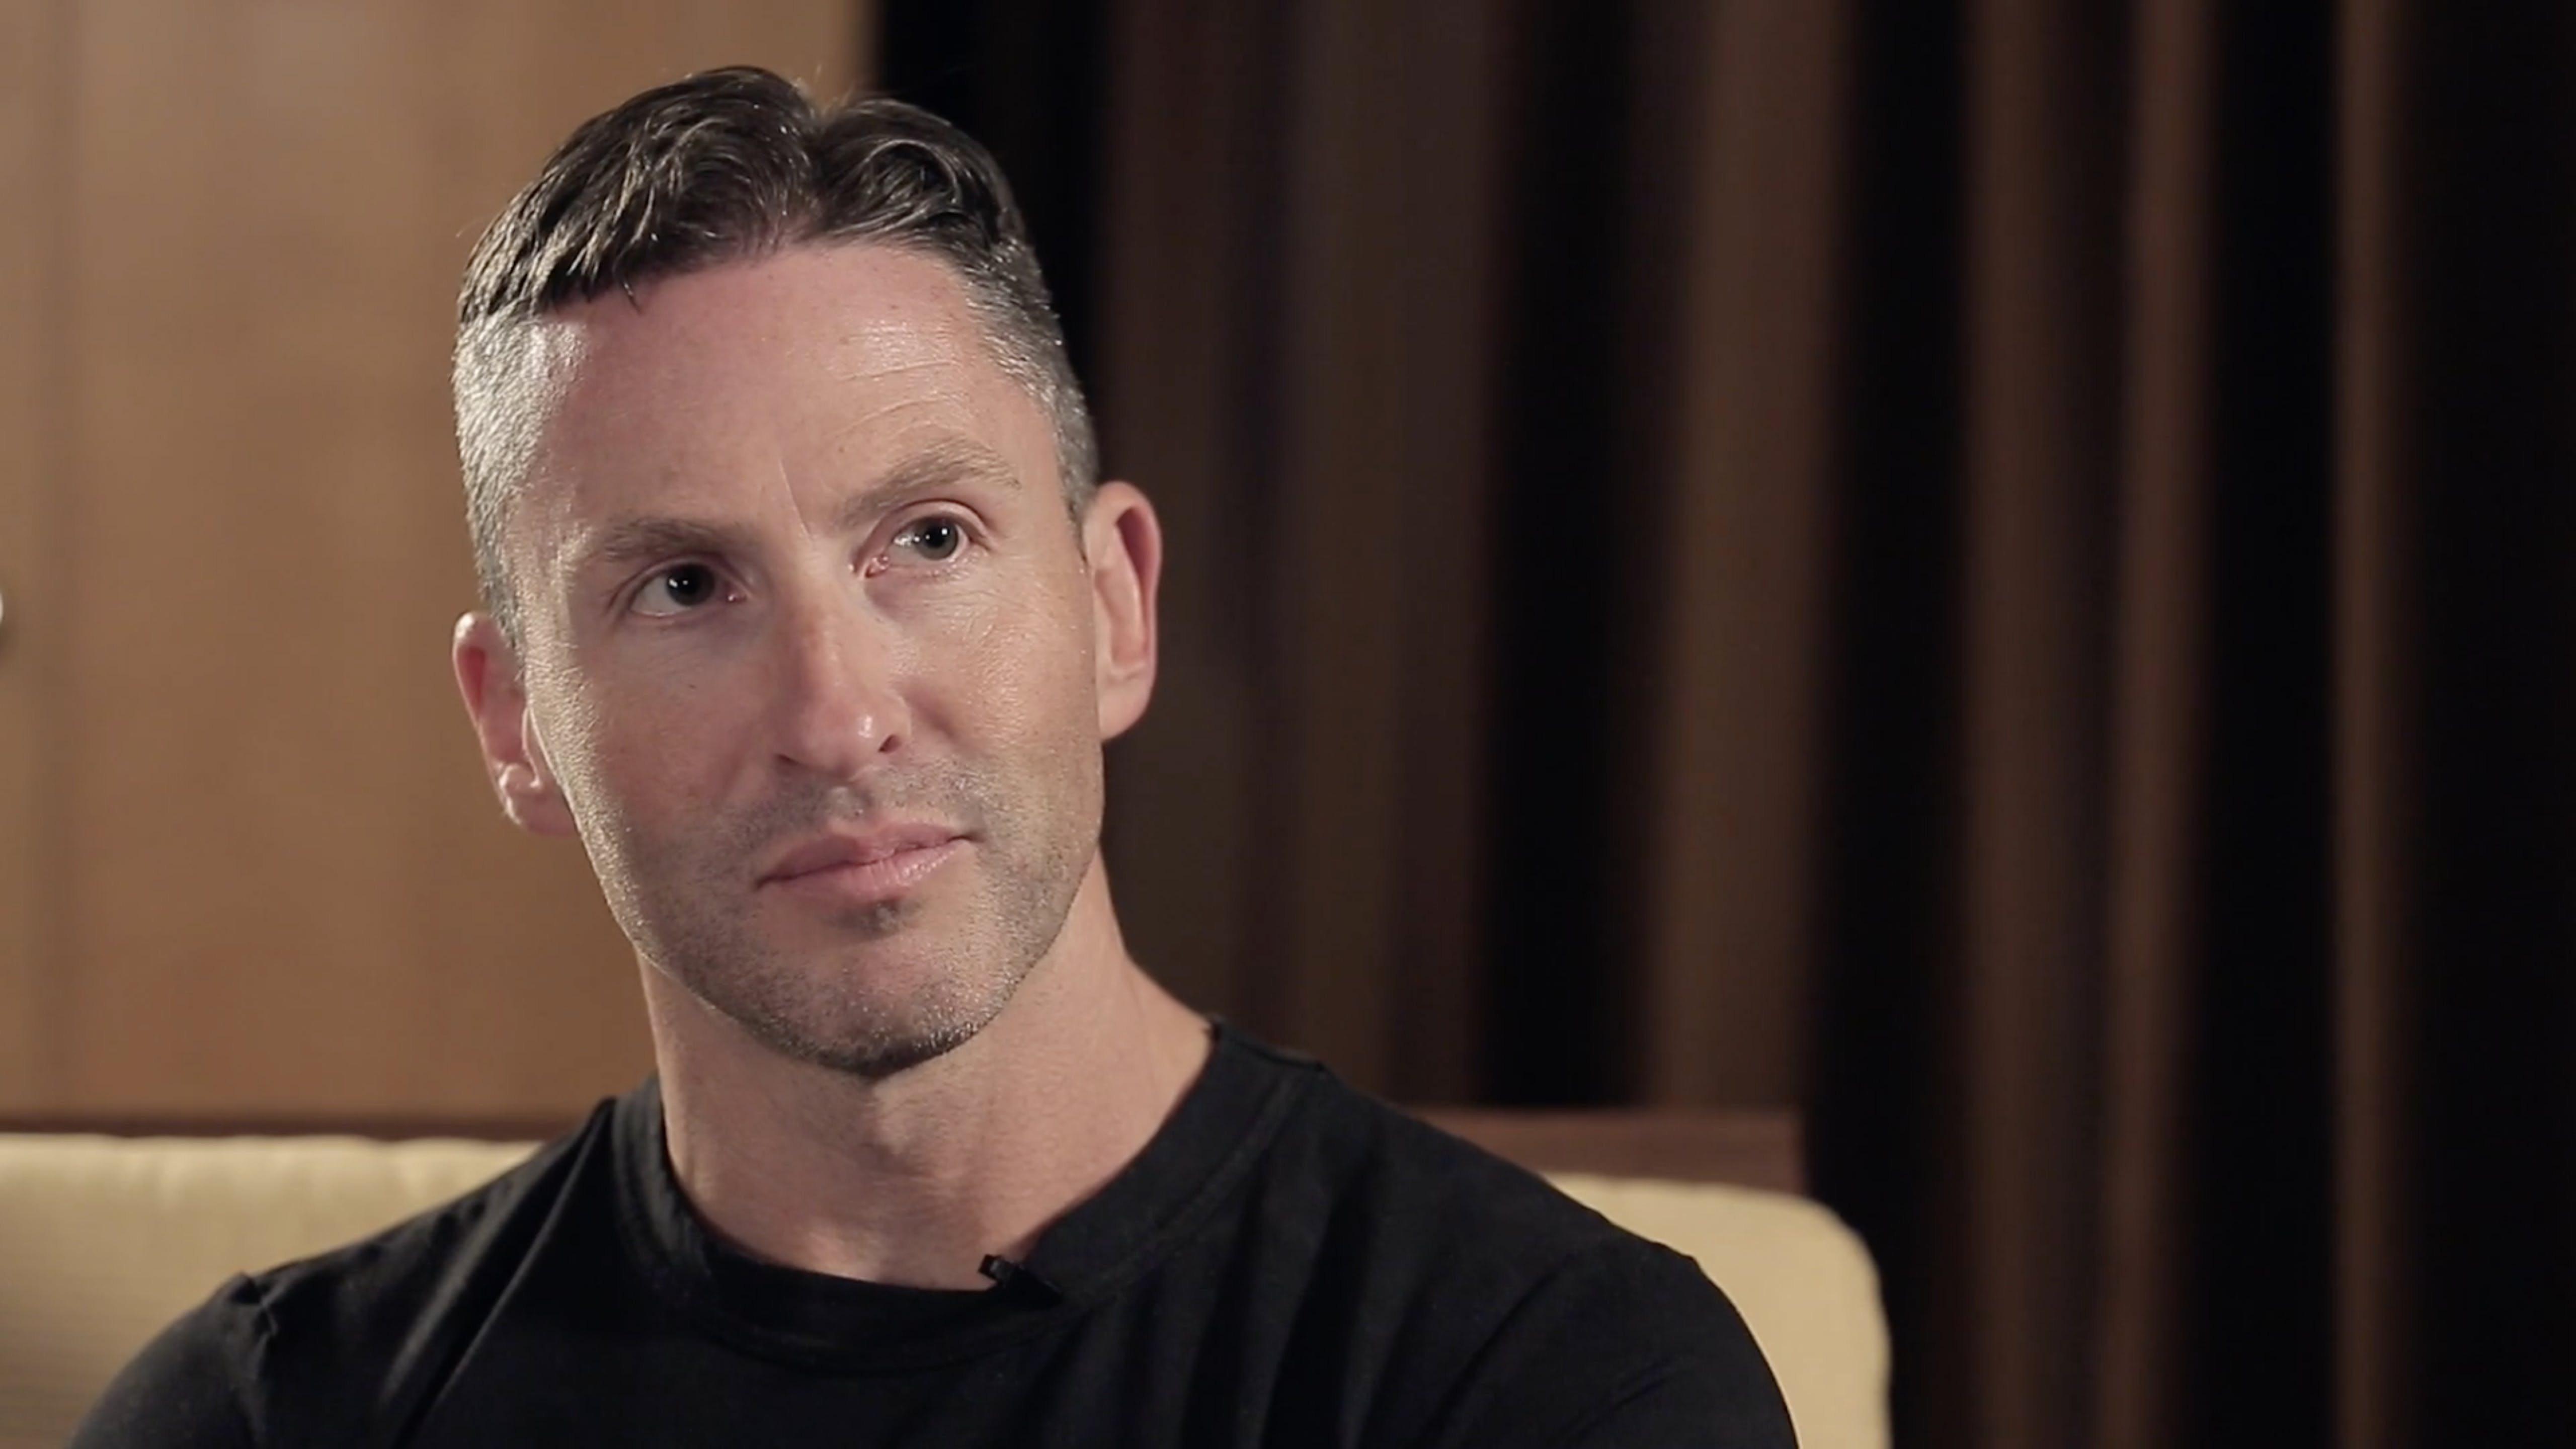 Dr Ted Naiman Treating Patients With Low Carb For 20 Years Diet